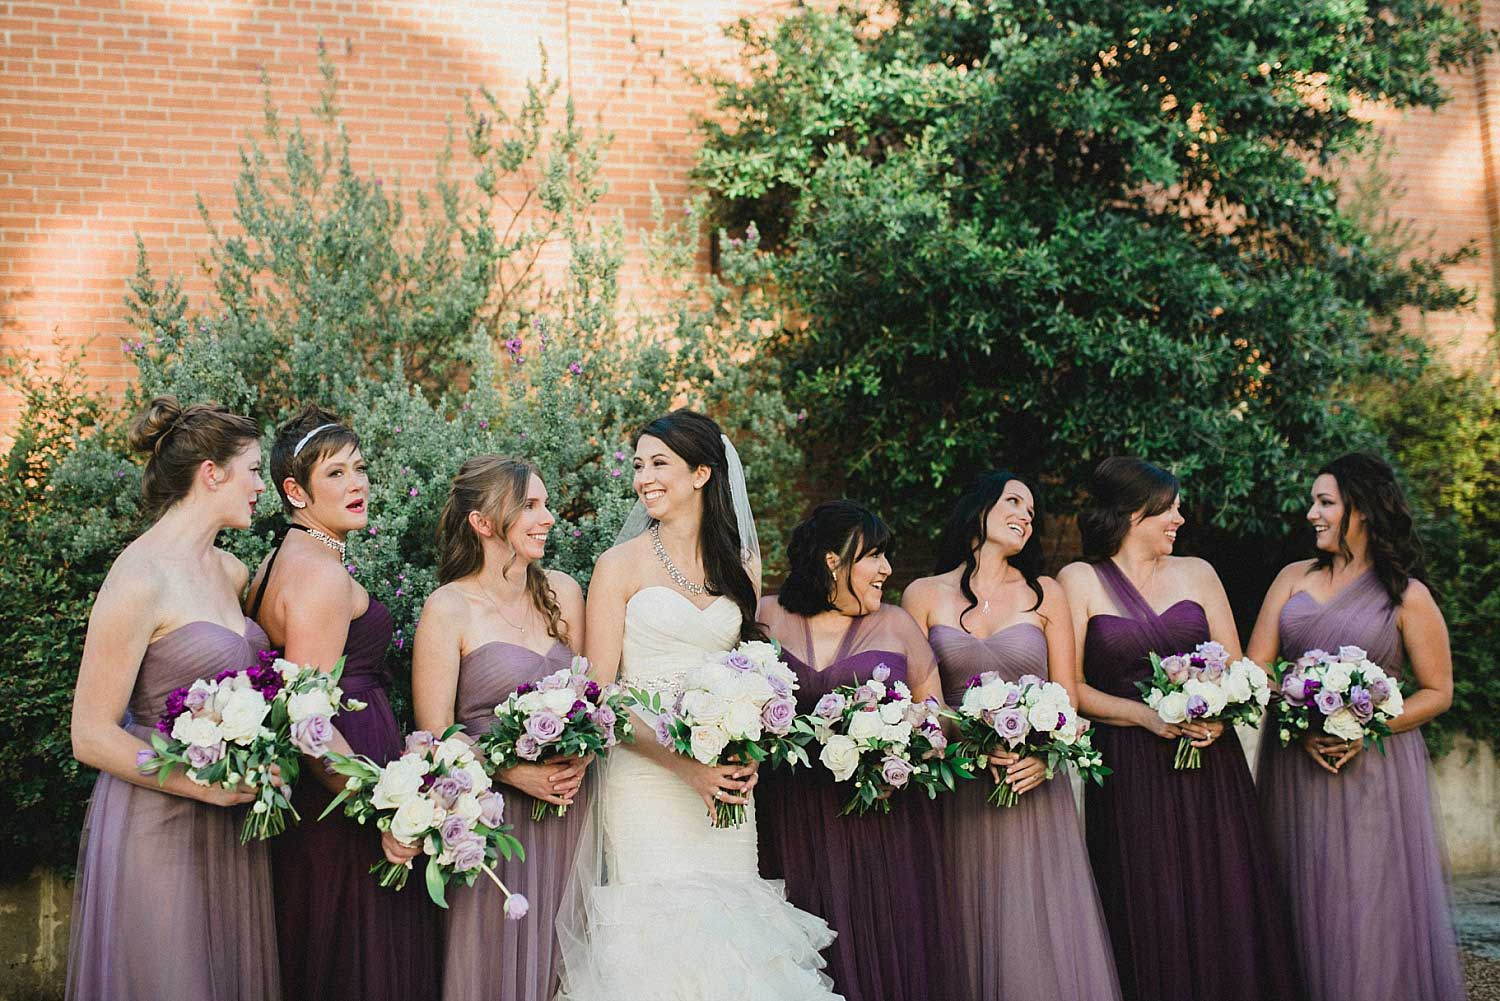 809 at Vickery wedding bridesmaids in lavender and purple bridesmaid dresses in courtyard